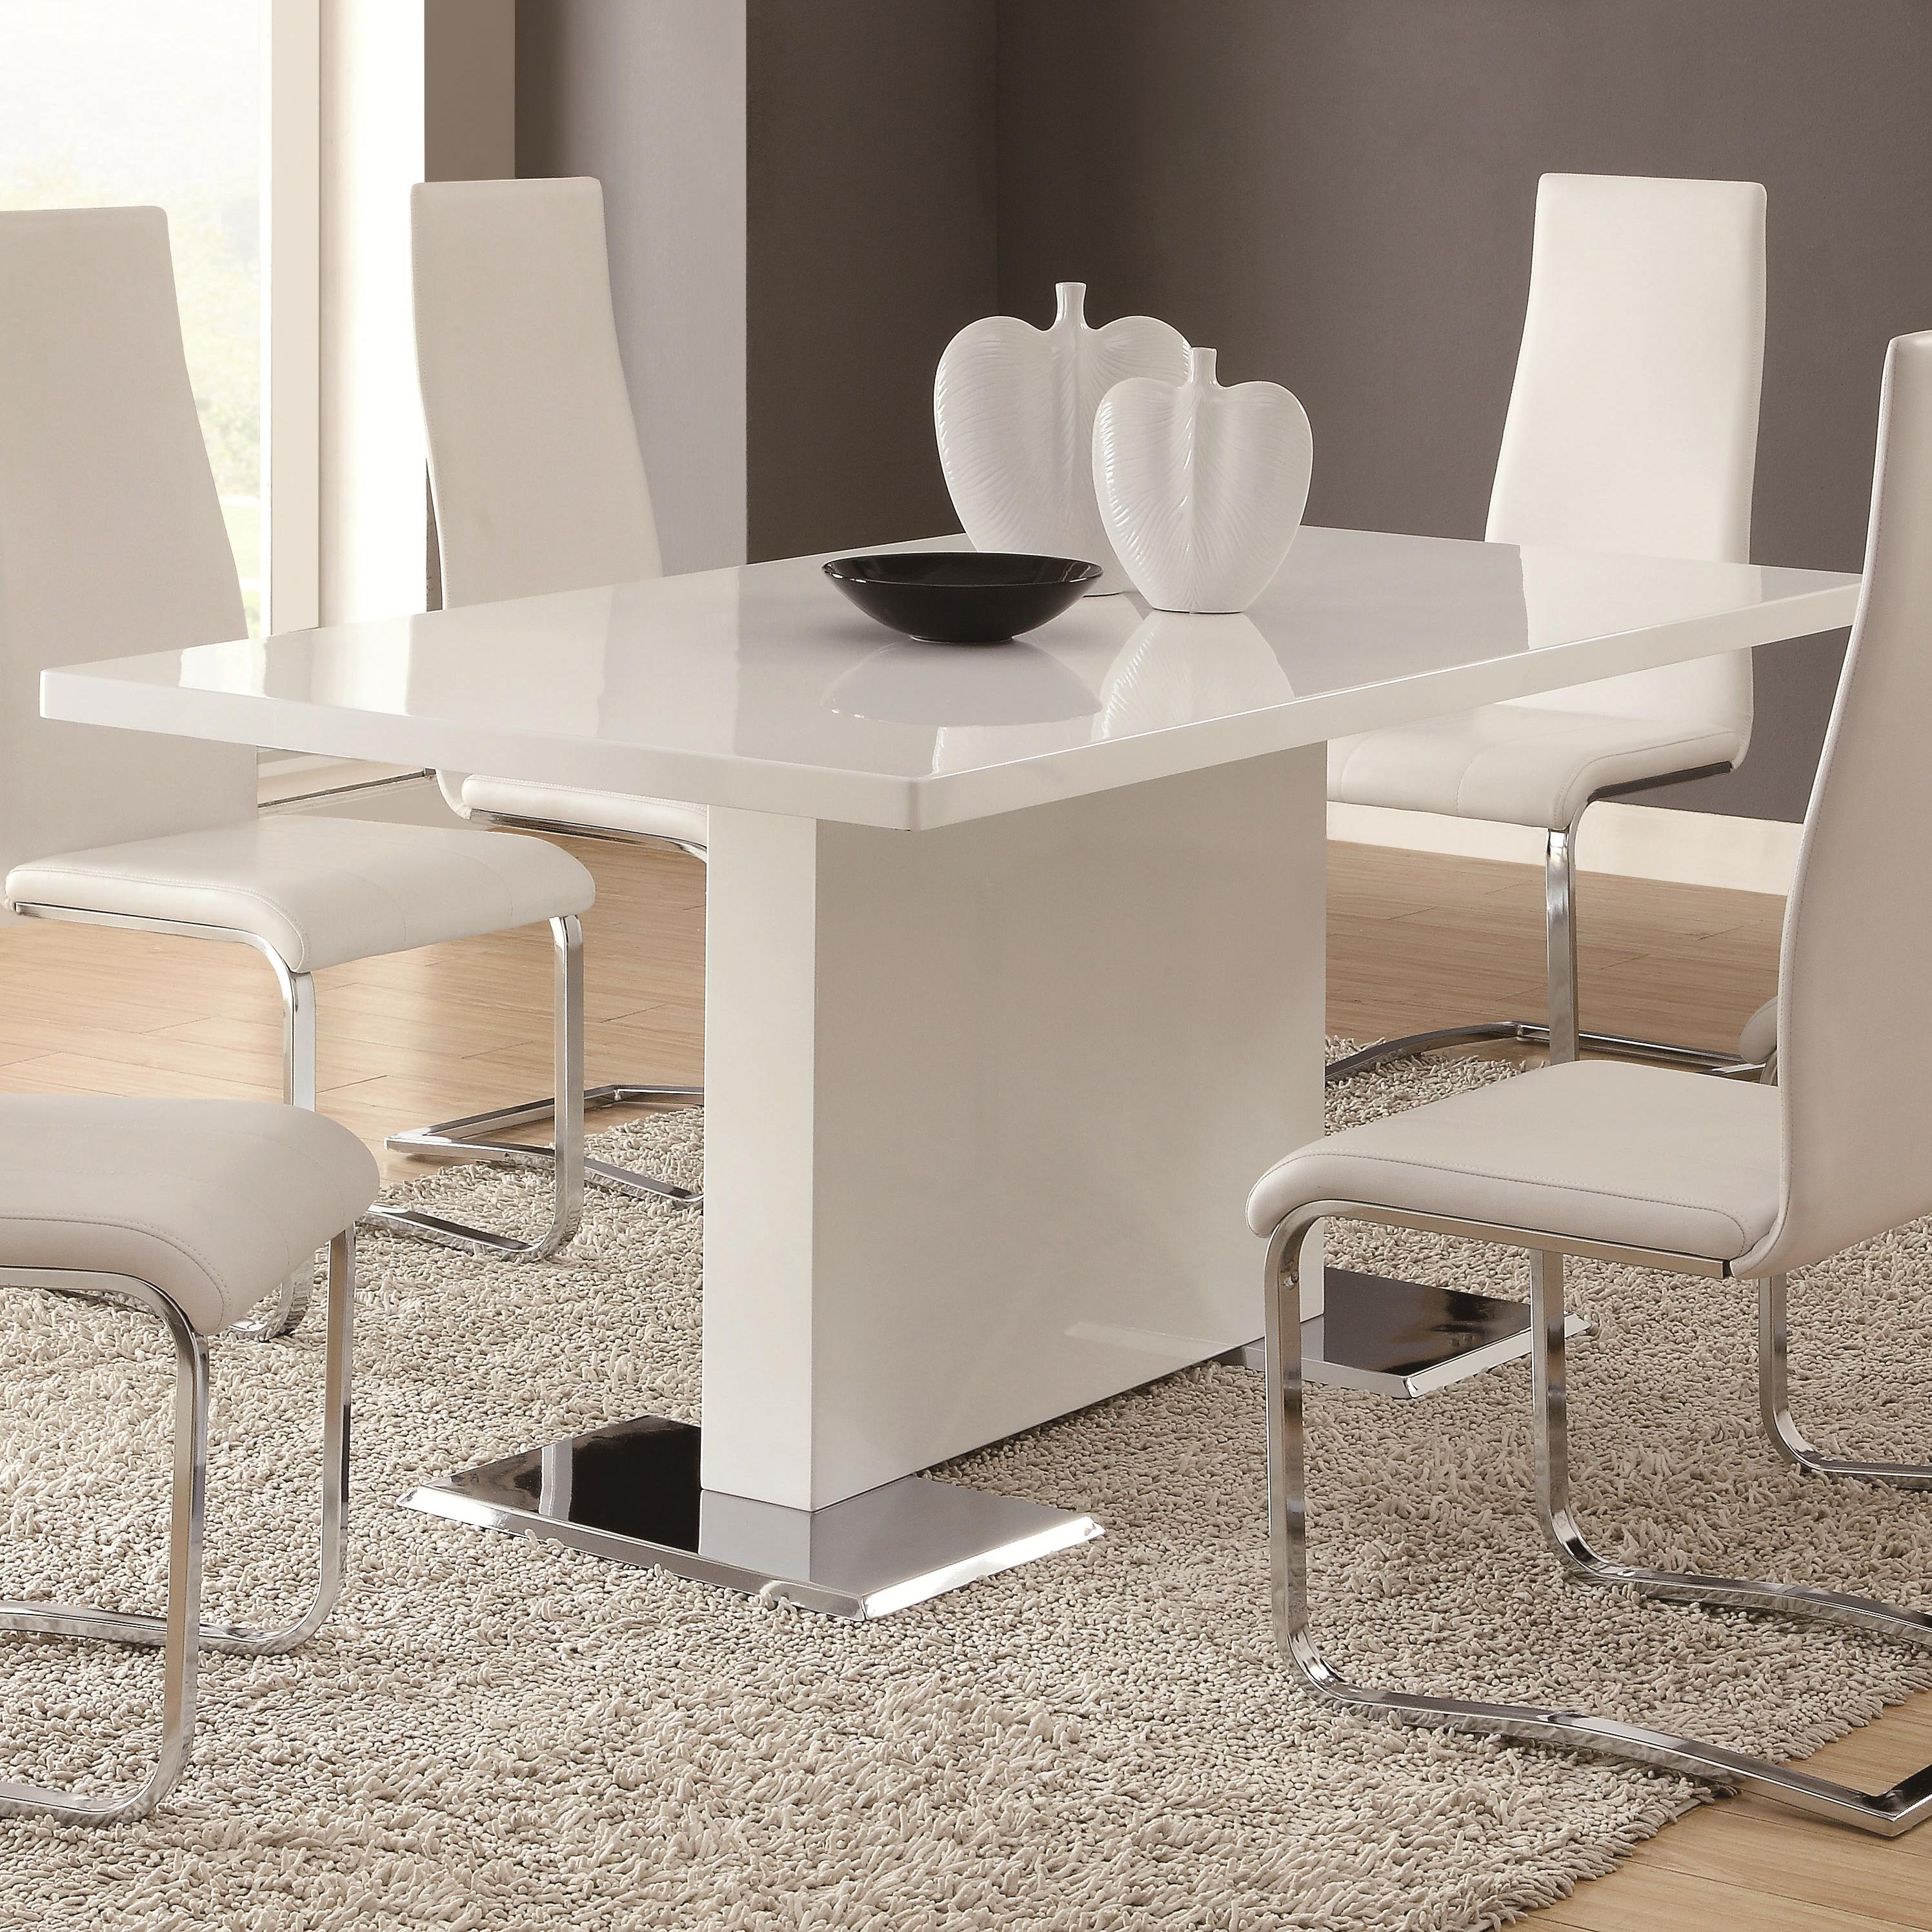 Coaster Modern Dining 102310 White Dining Table with